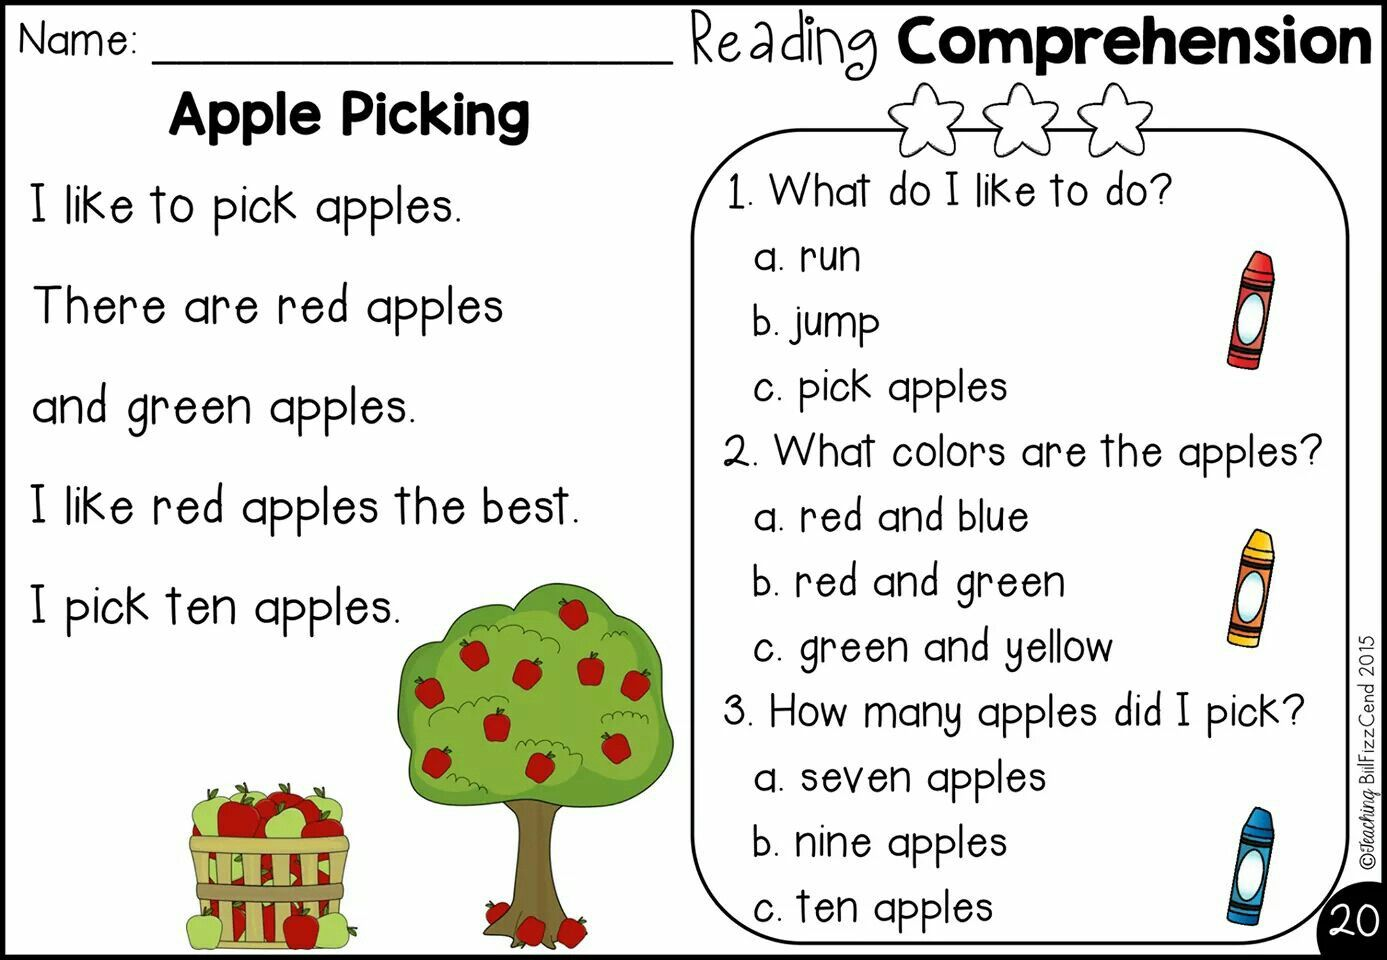 Pin By Marianela Gonzalez On Material Escolar Reading Comprehension Reading Comprehension Passages Kids English [ 960 x 1387 Pixel ]